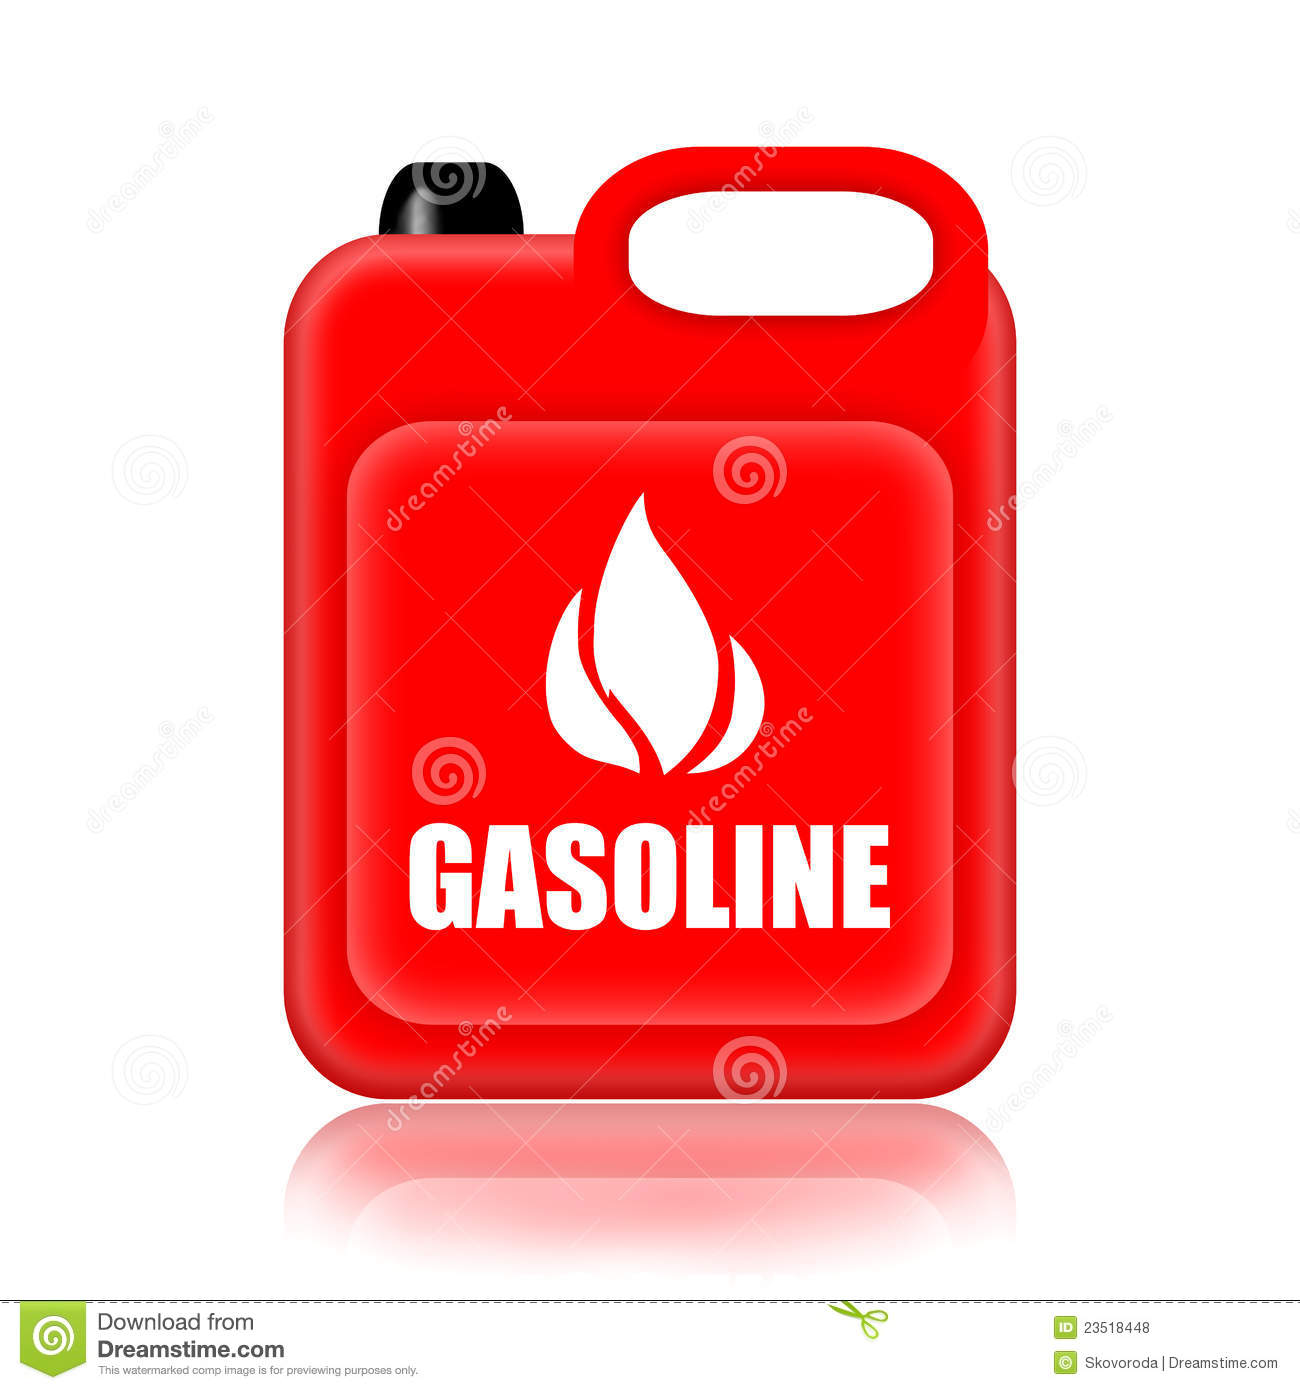 Benzine Jerrycan Gasoline Jerrycan Stock Illustration Illustration Of